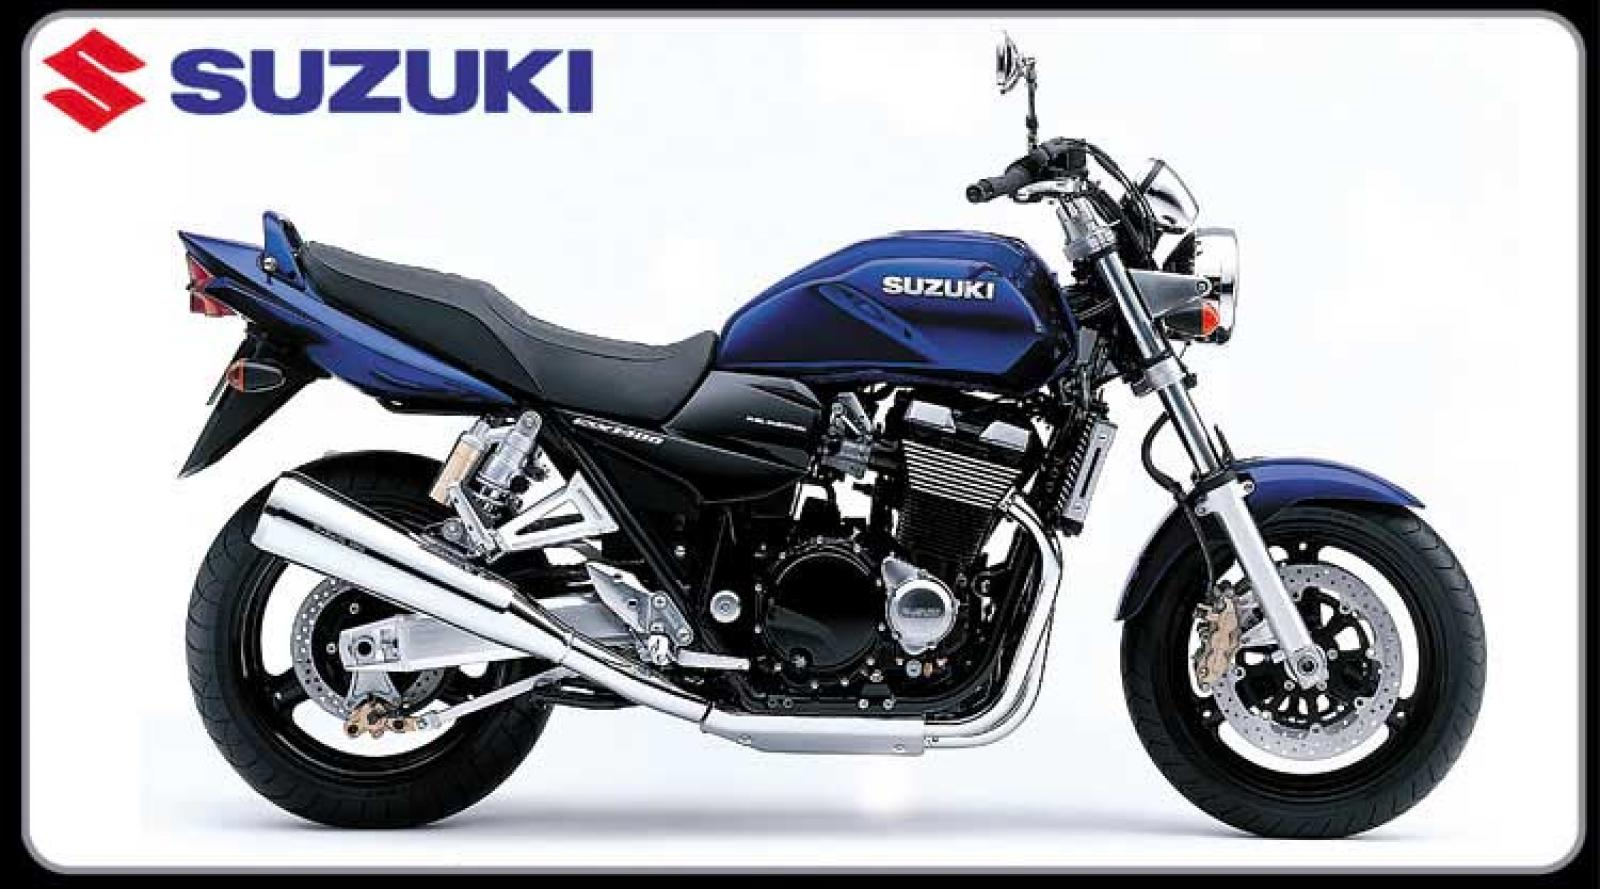 suzuki suzuki gsx 1400 moto zombdrive com. Black Bedroom Furniture Sets. Home Design Ideas